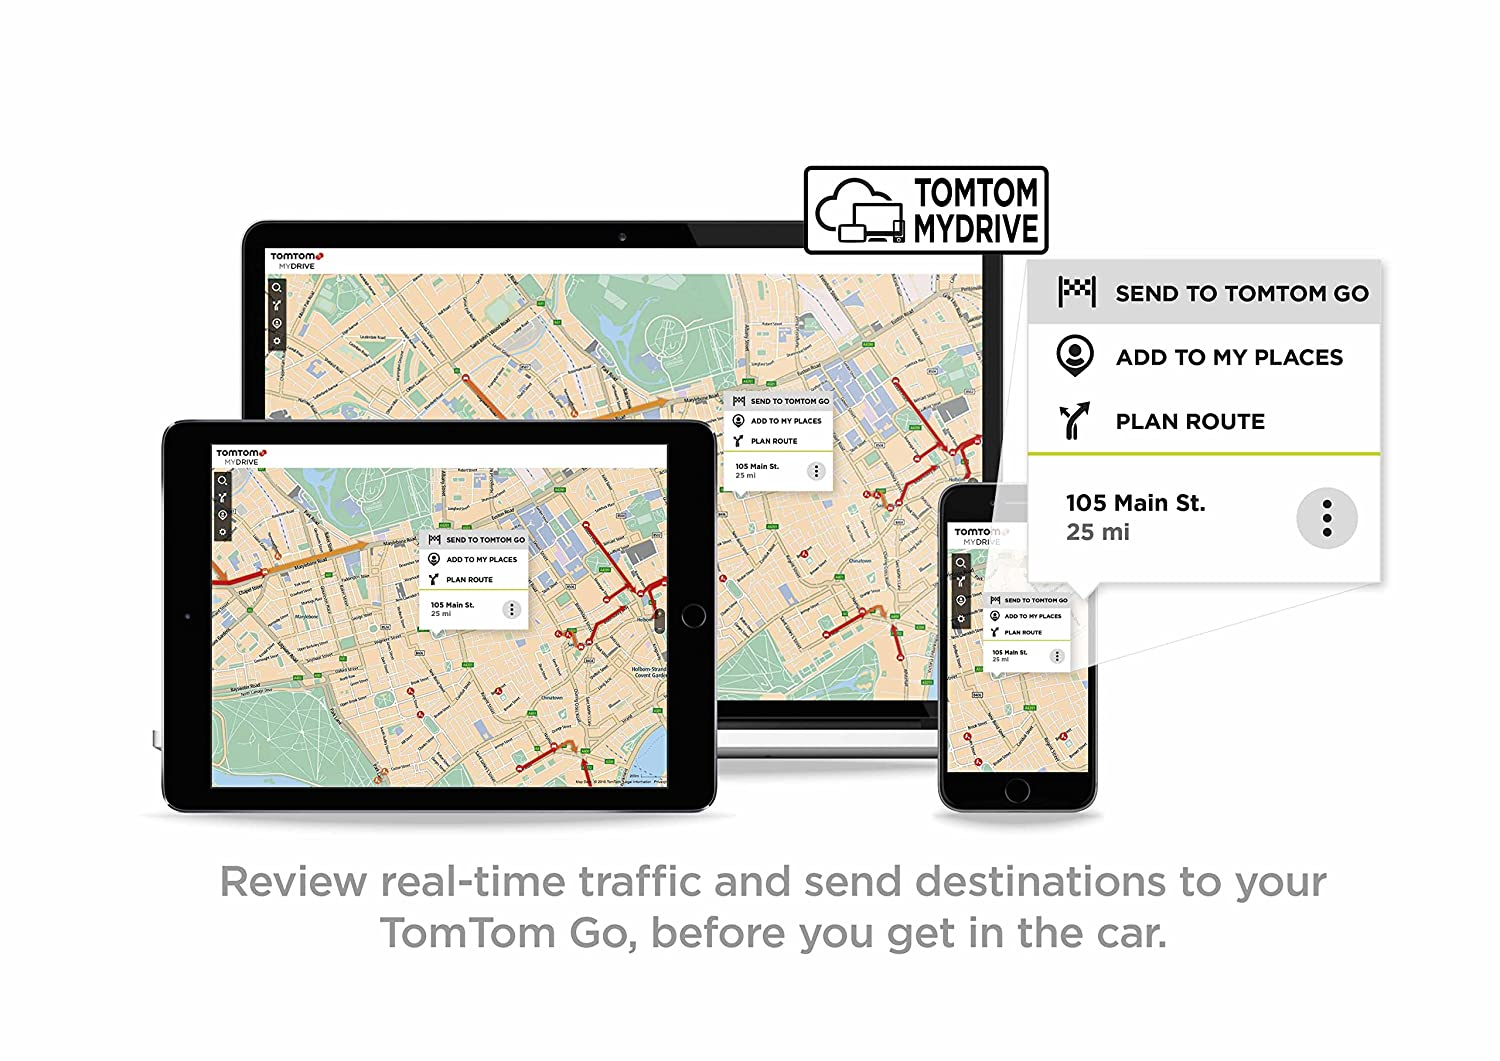 Tomtom Go 510 5 Inch Sat Nav With World Maps Black Gps Tracker Wiring Diagram Navigation